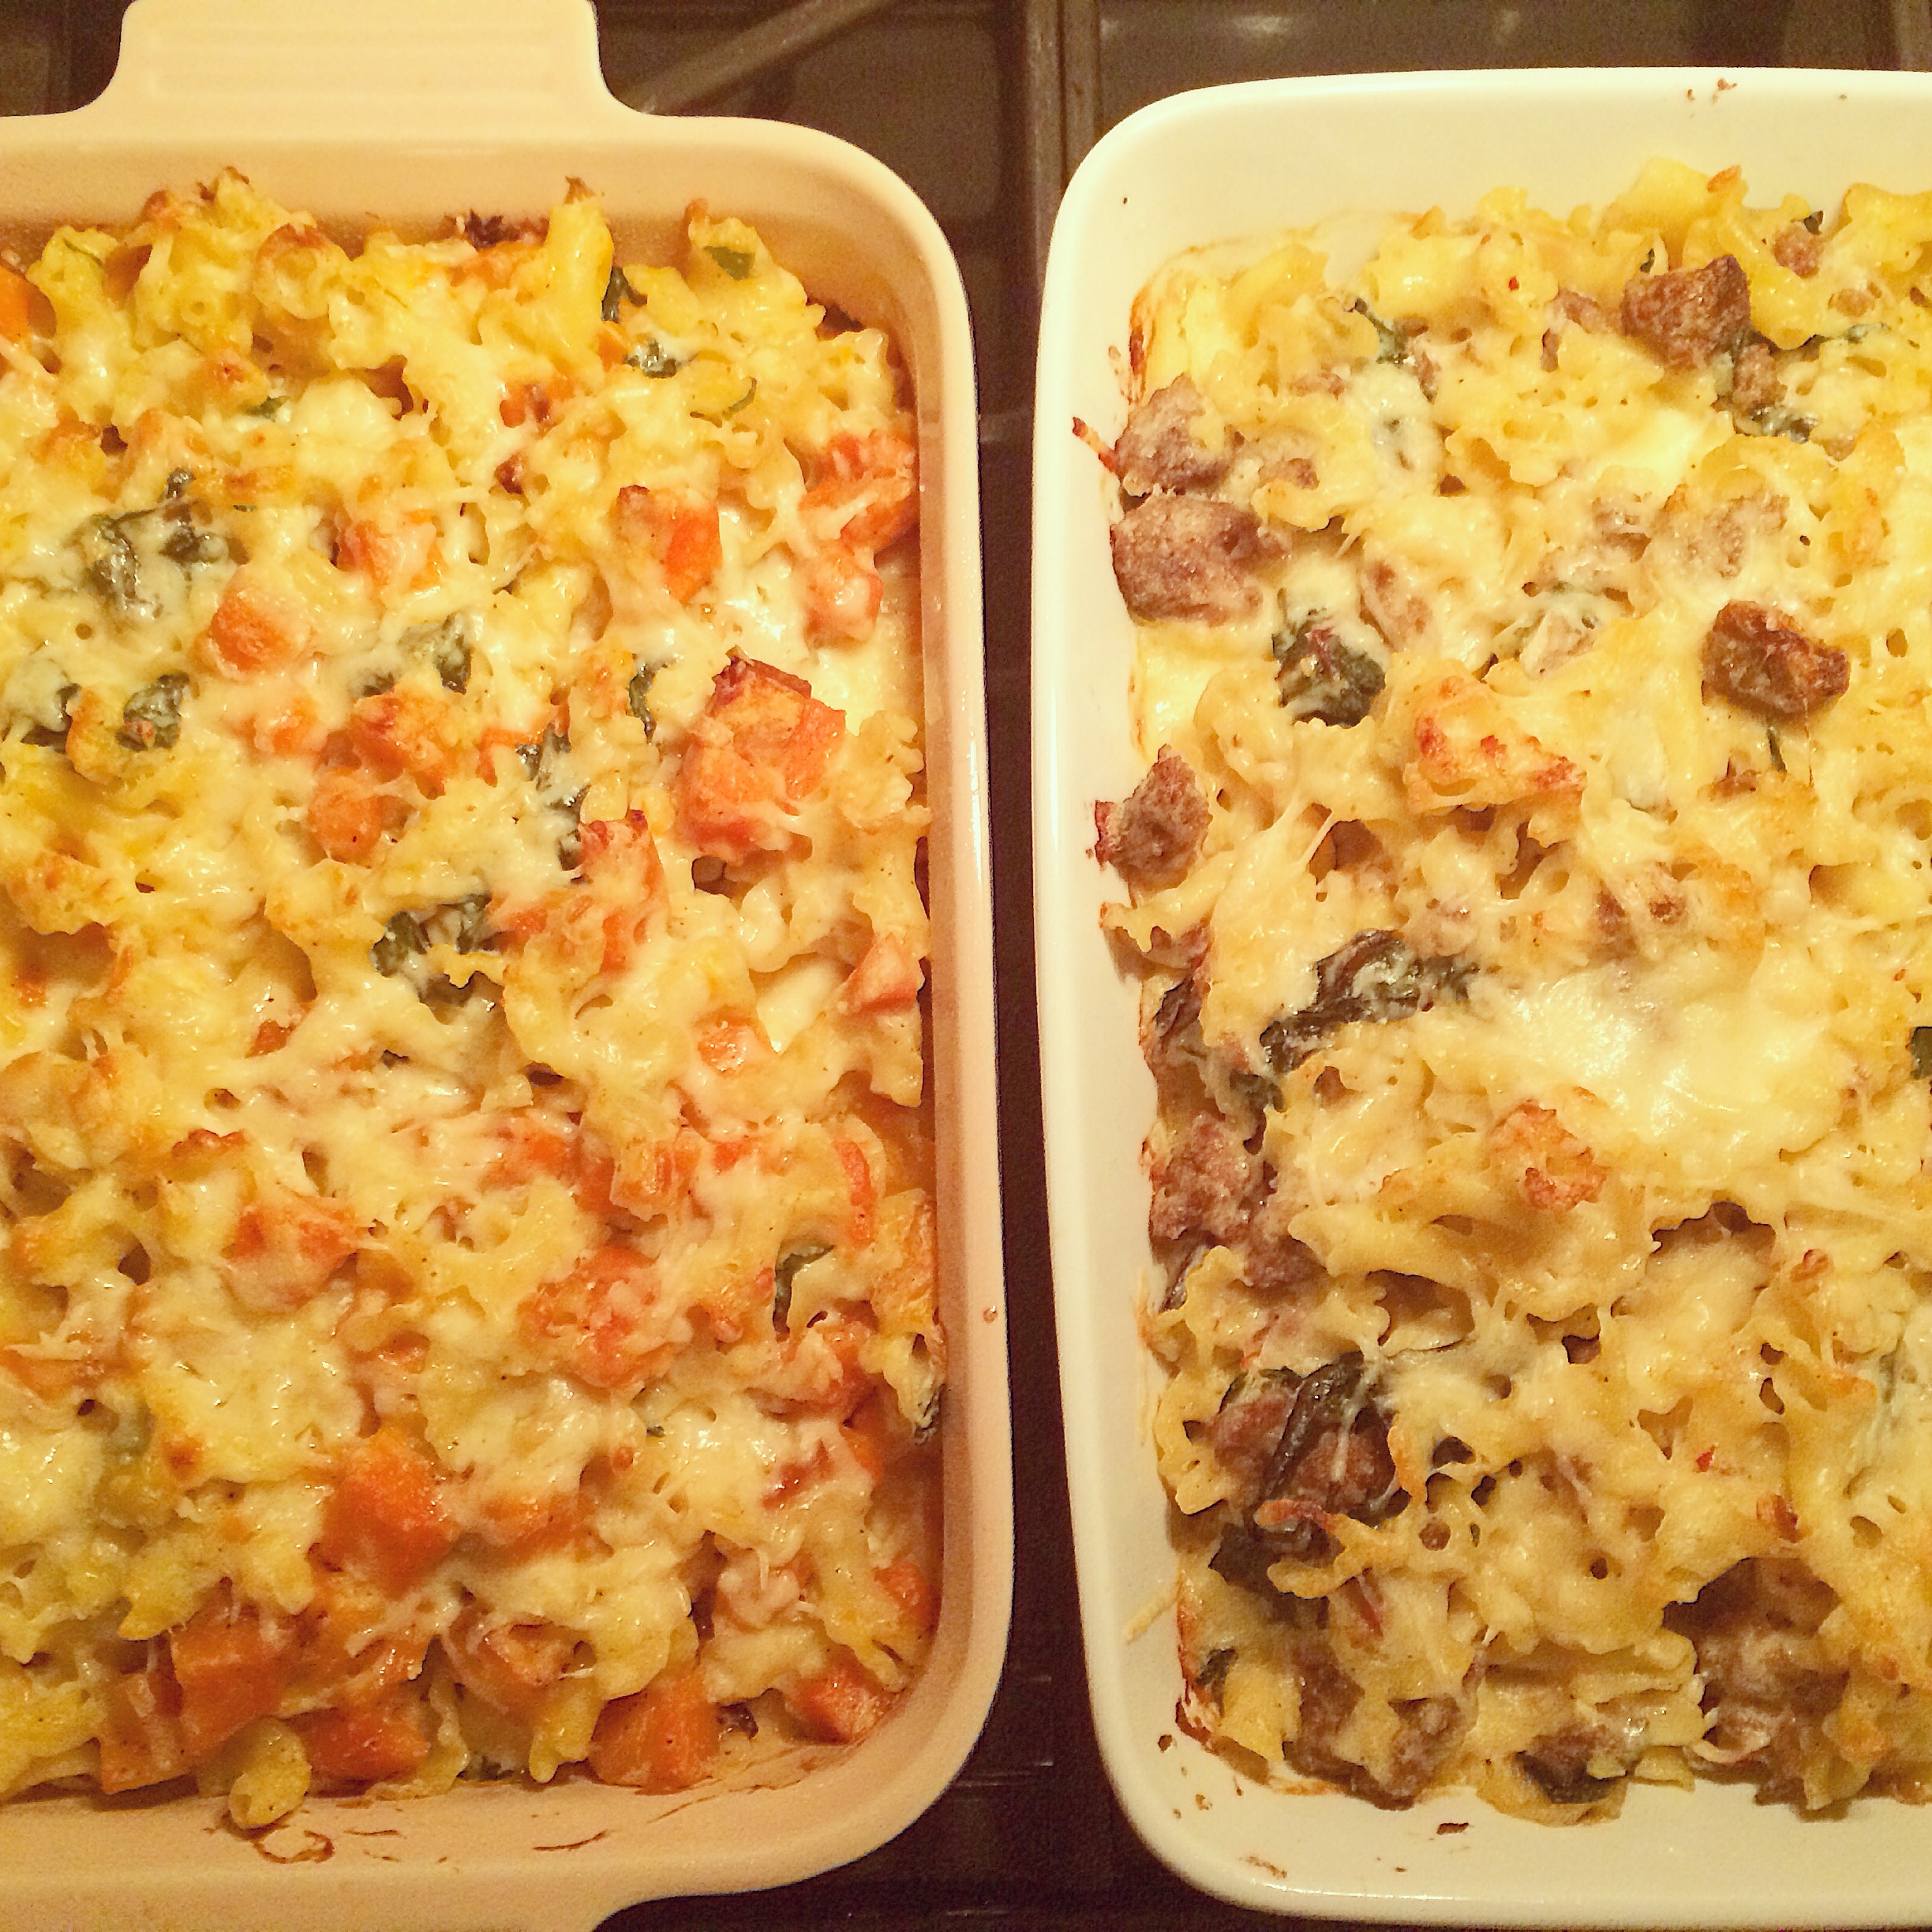 Baked Pasta With Sausage And Broccoli Rabe Blueberries Basil